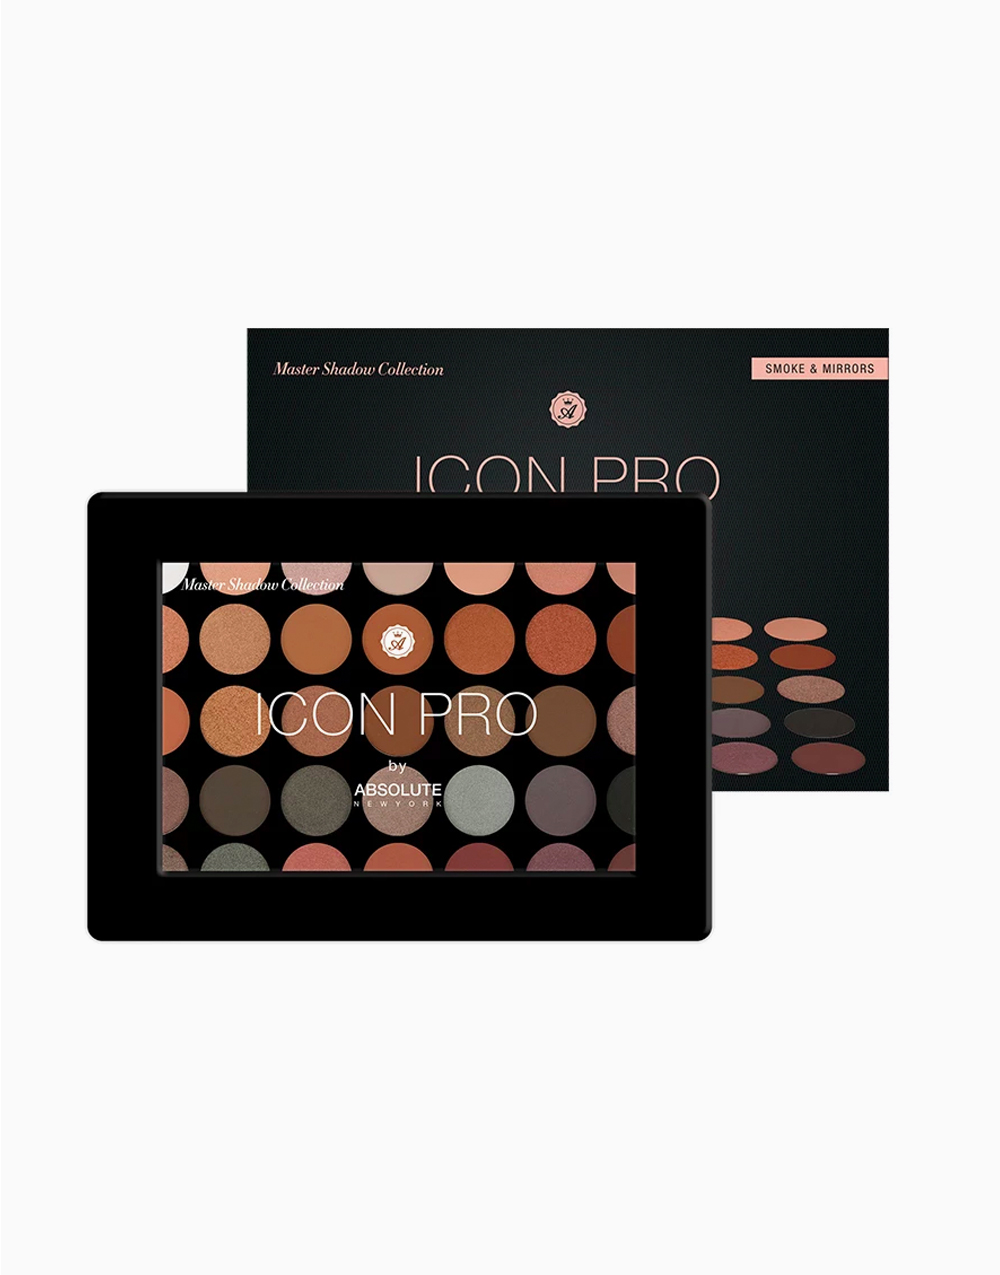 Icon Pro Eye Shadow Palette by Absolute New York | Smoke & Mirrors